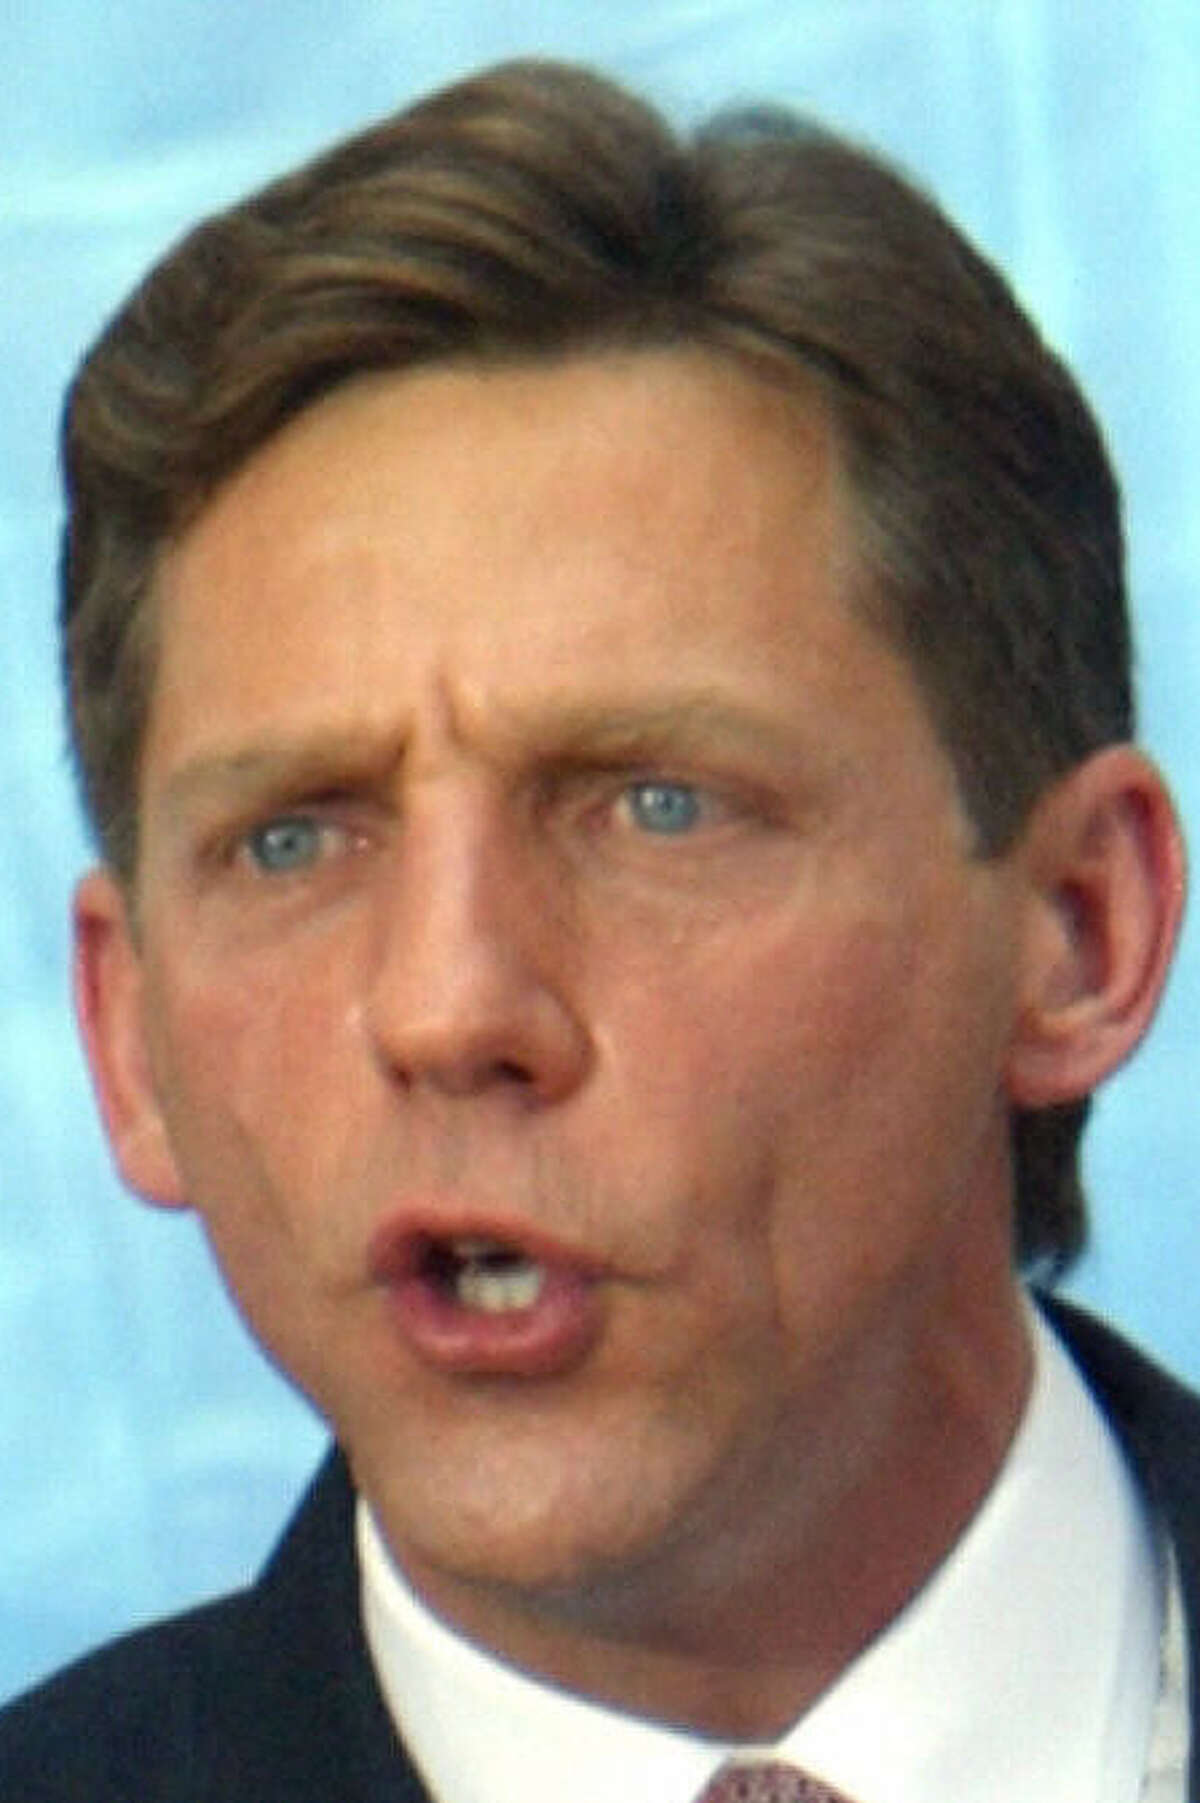 The decision was a legal victory for David Miscavige.